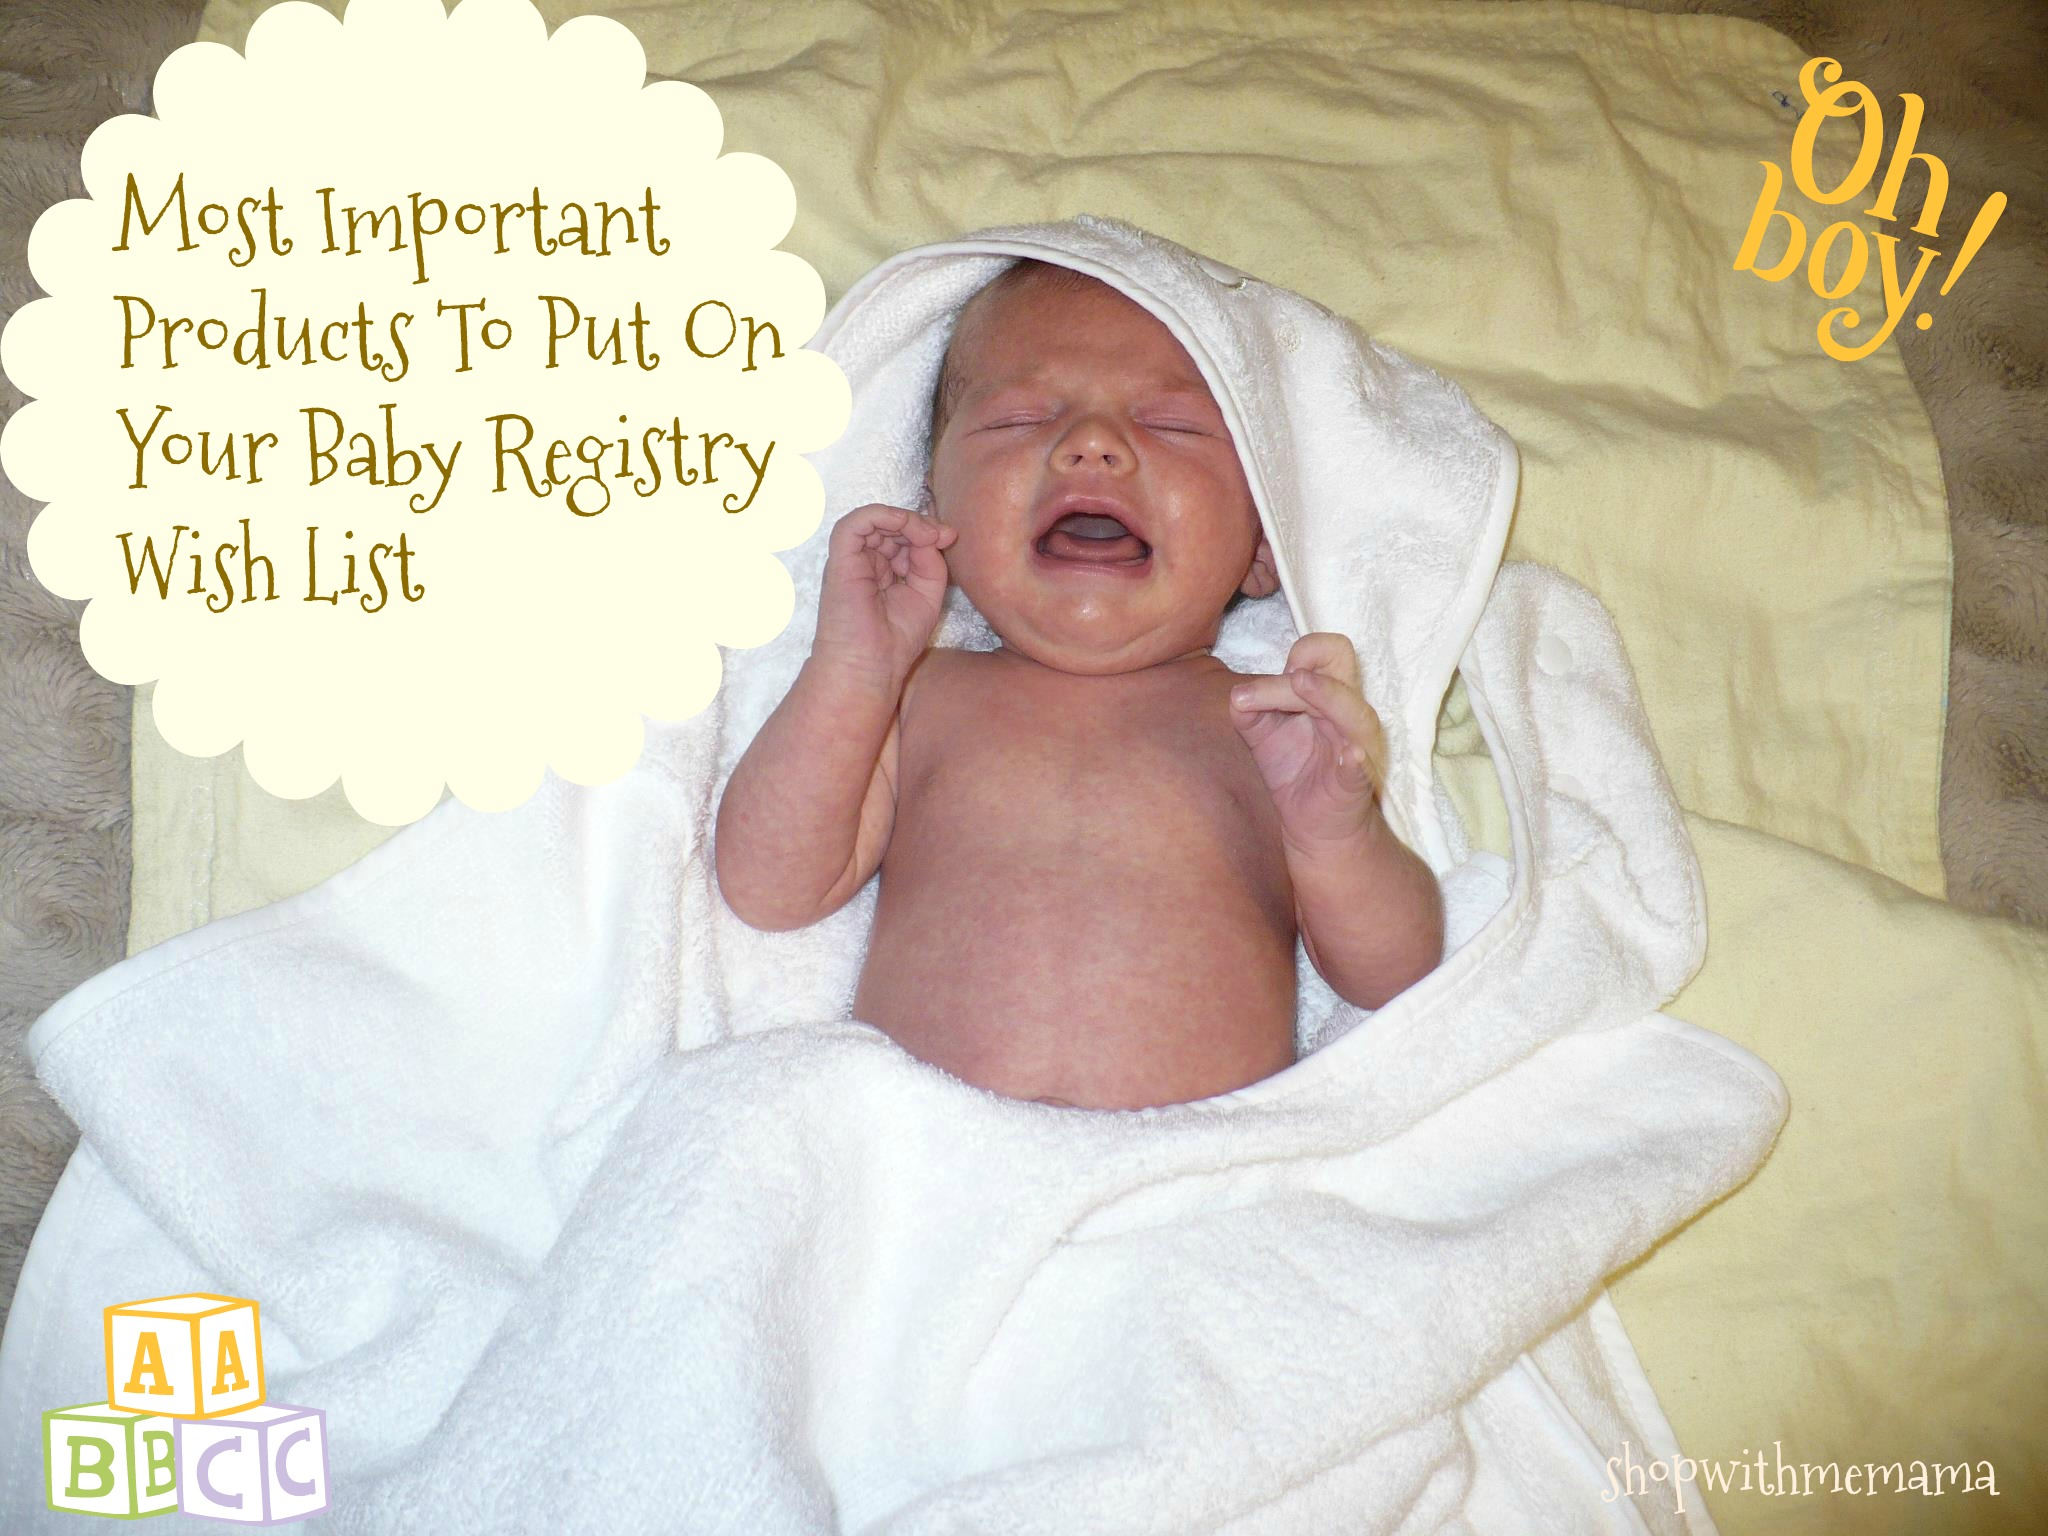 The Most Important Products To Put On Your Baby Registry Wish List